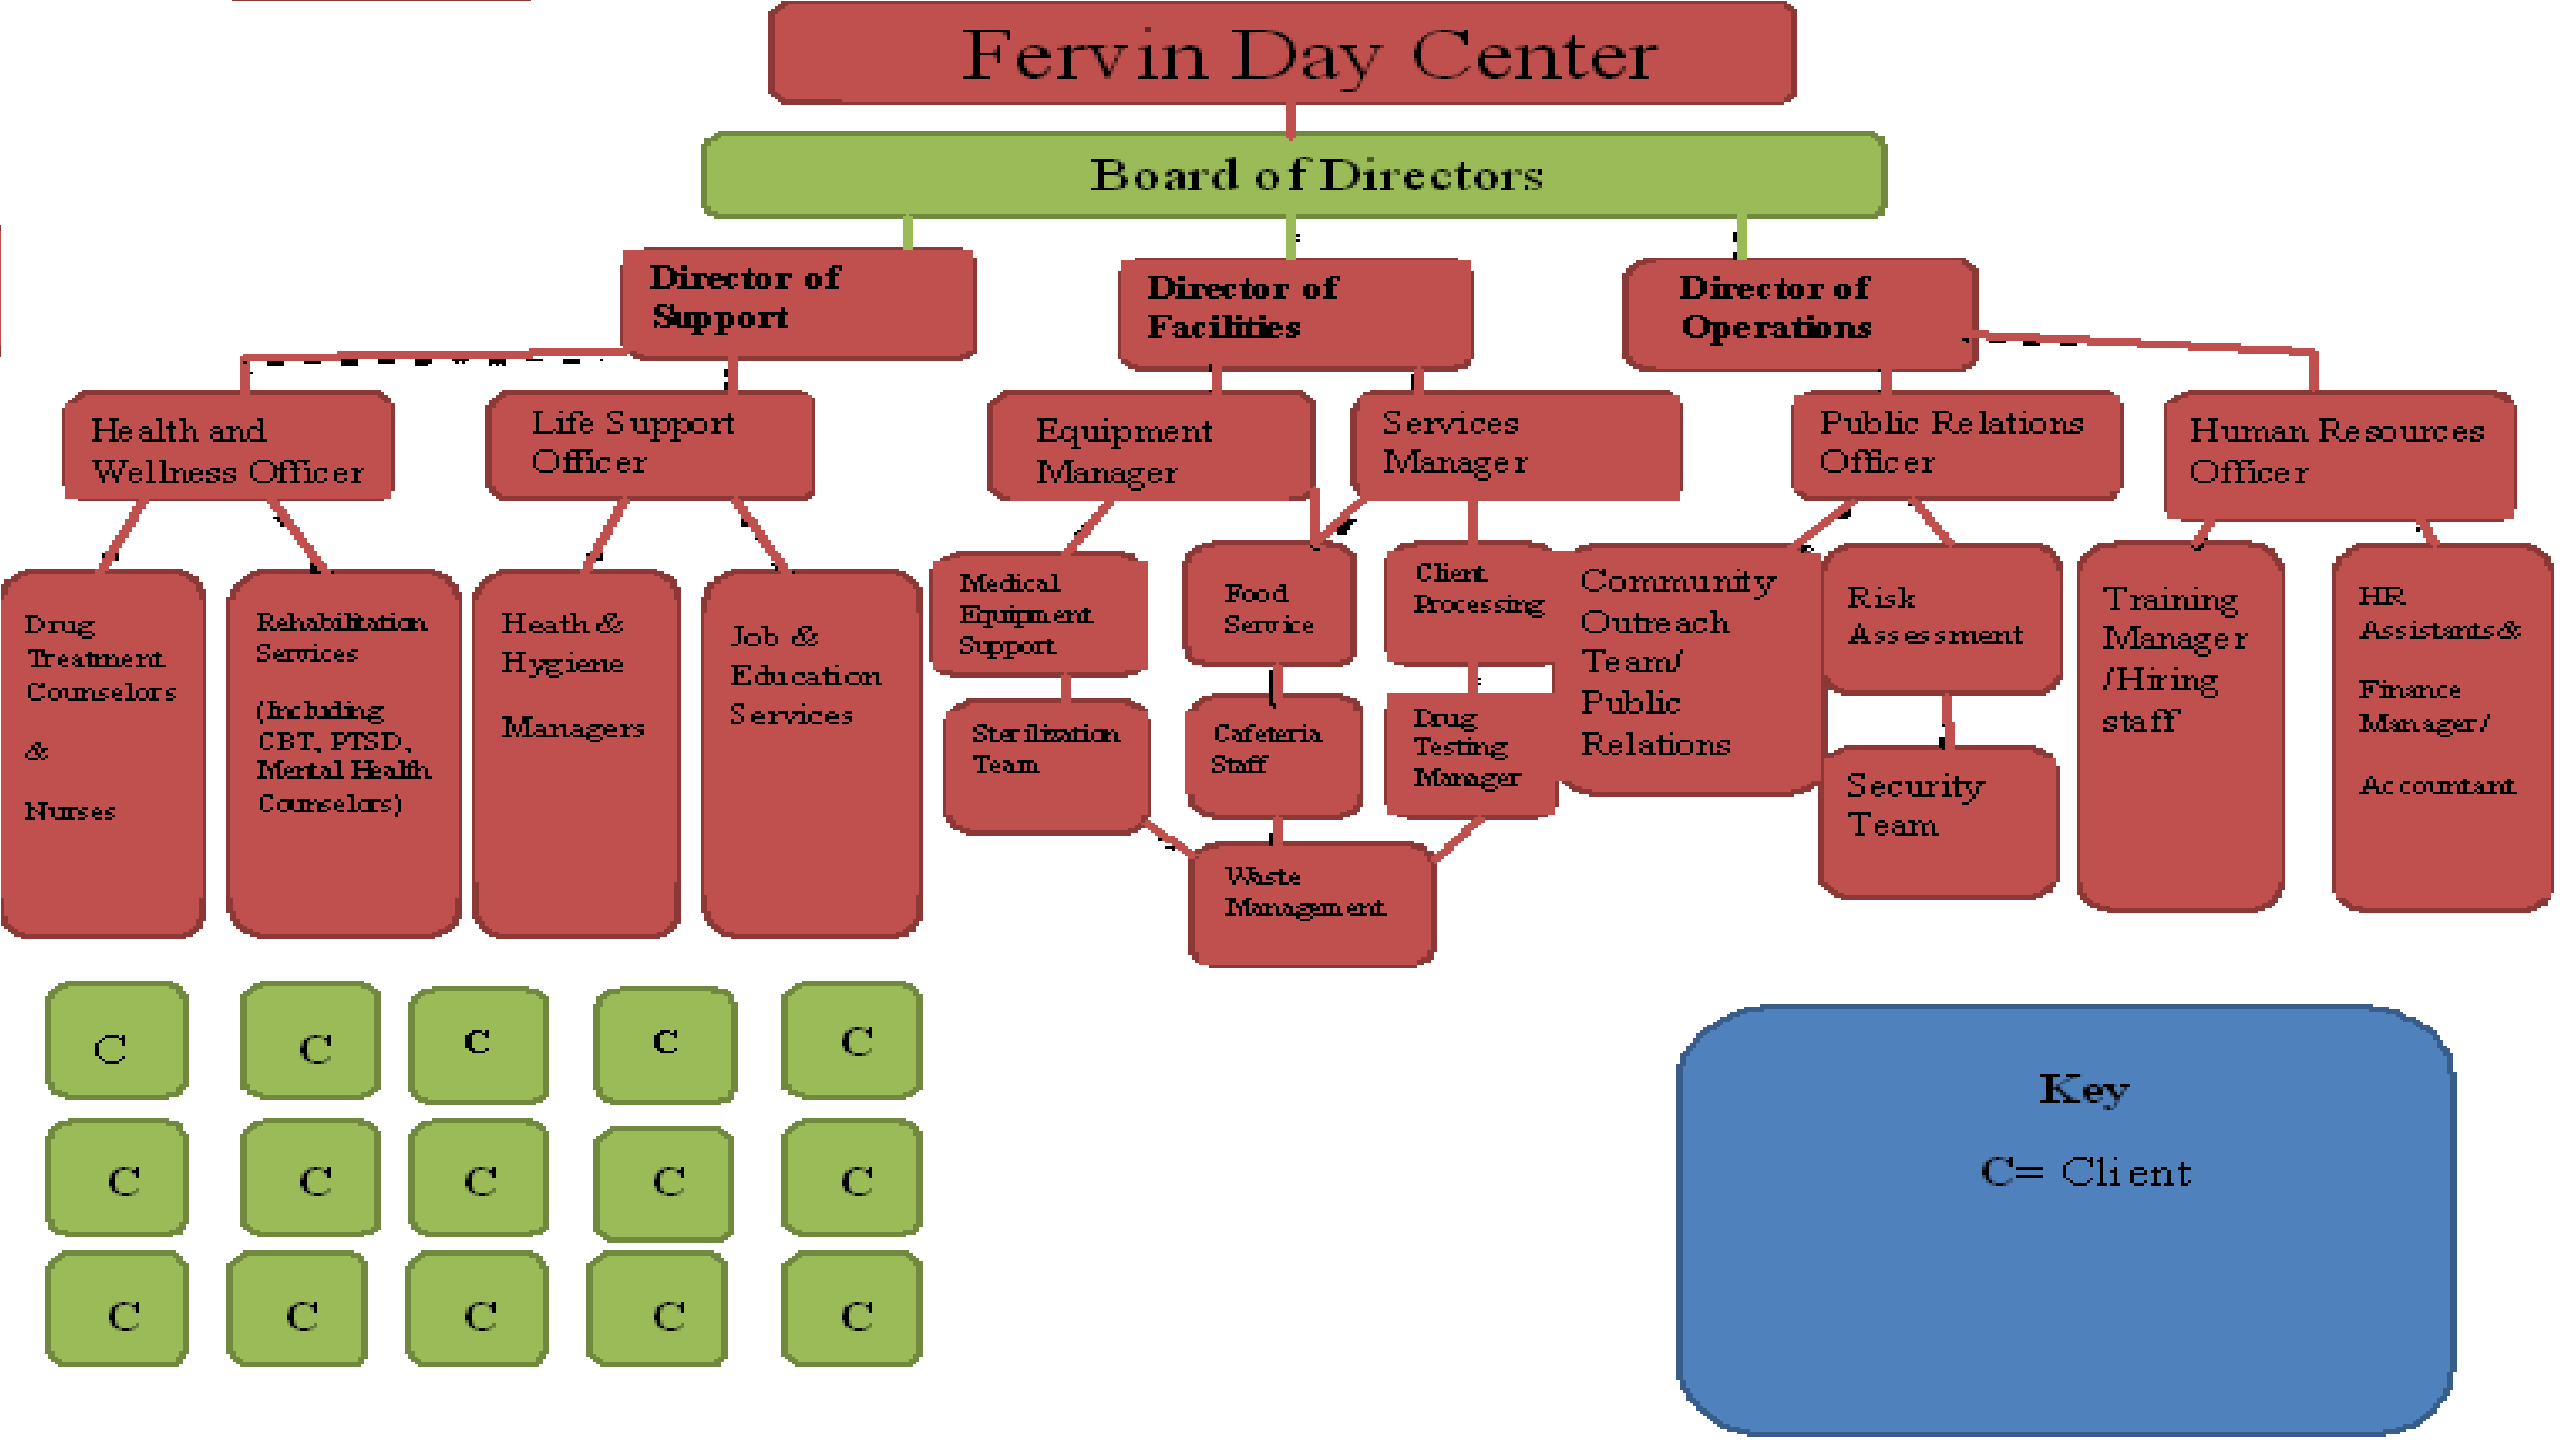 Counselors staff fervin day center flow chart pic geenschuldenfo Images